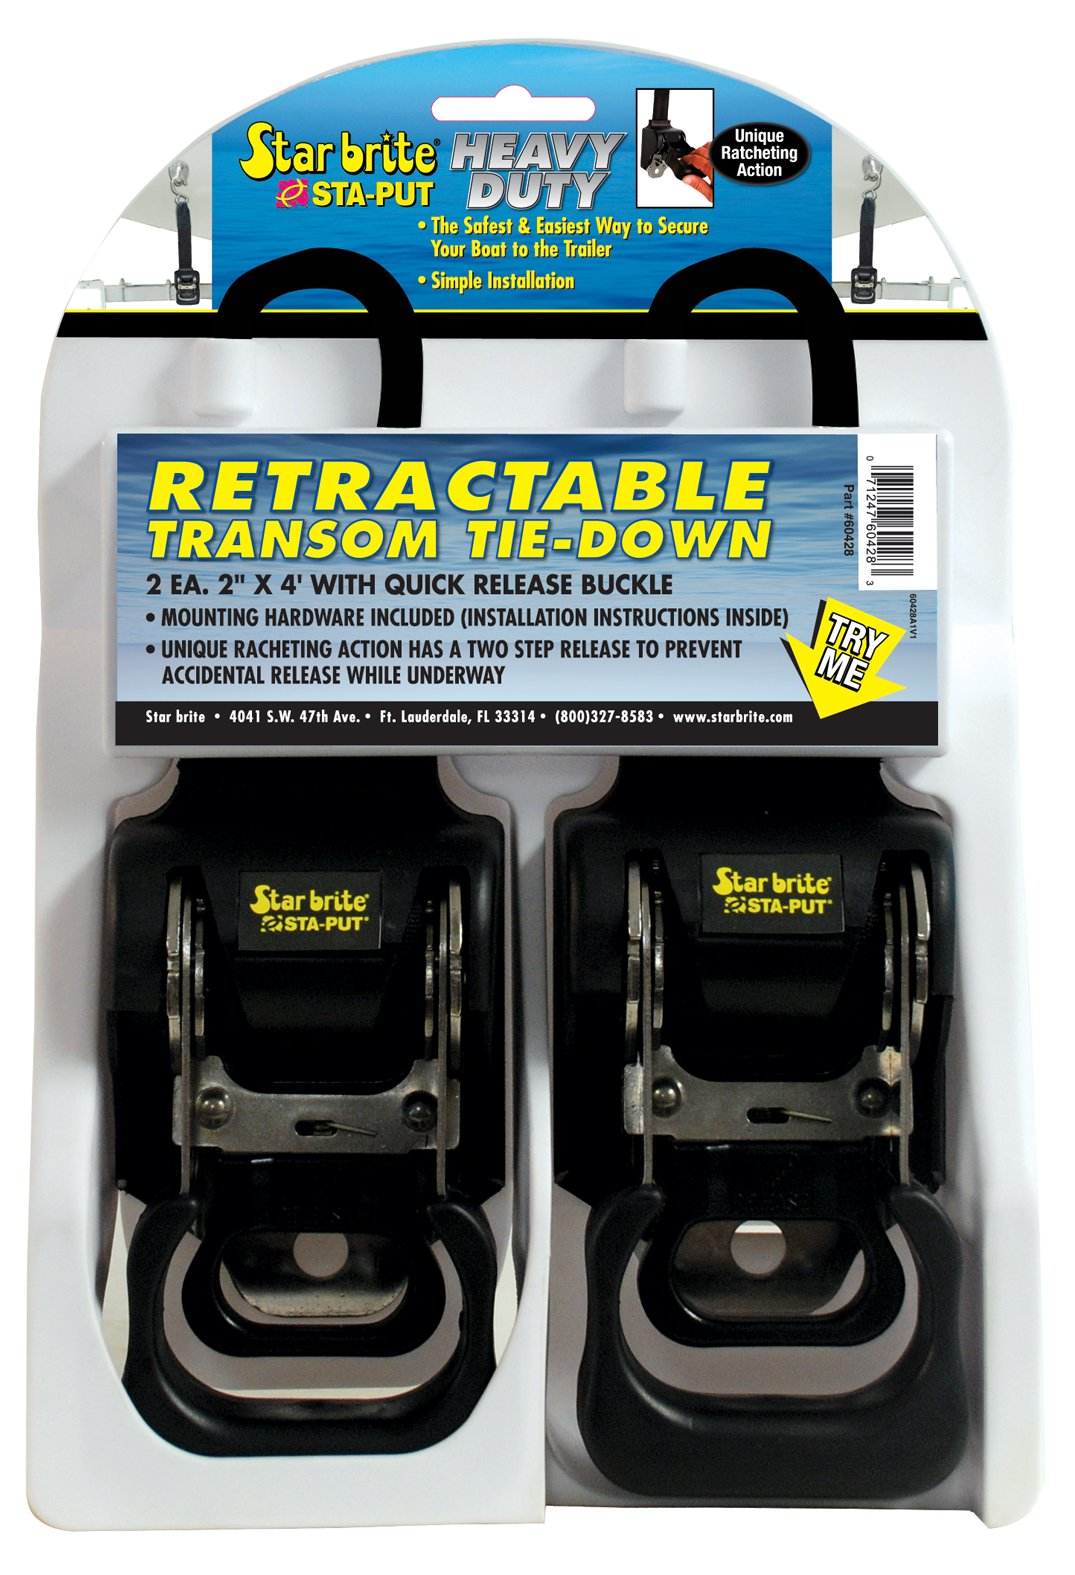 Star brite 060428 Heavy Duty Retractable Transom Tie-Down with Quick Release Buckle by Star Brite